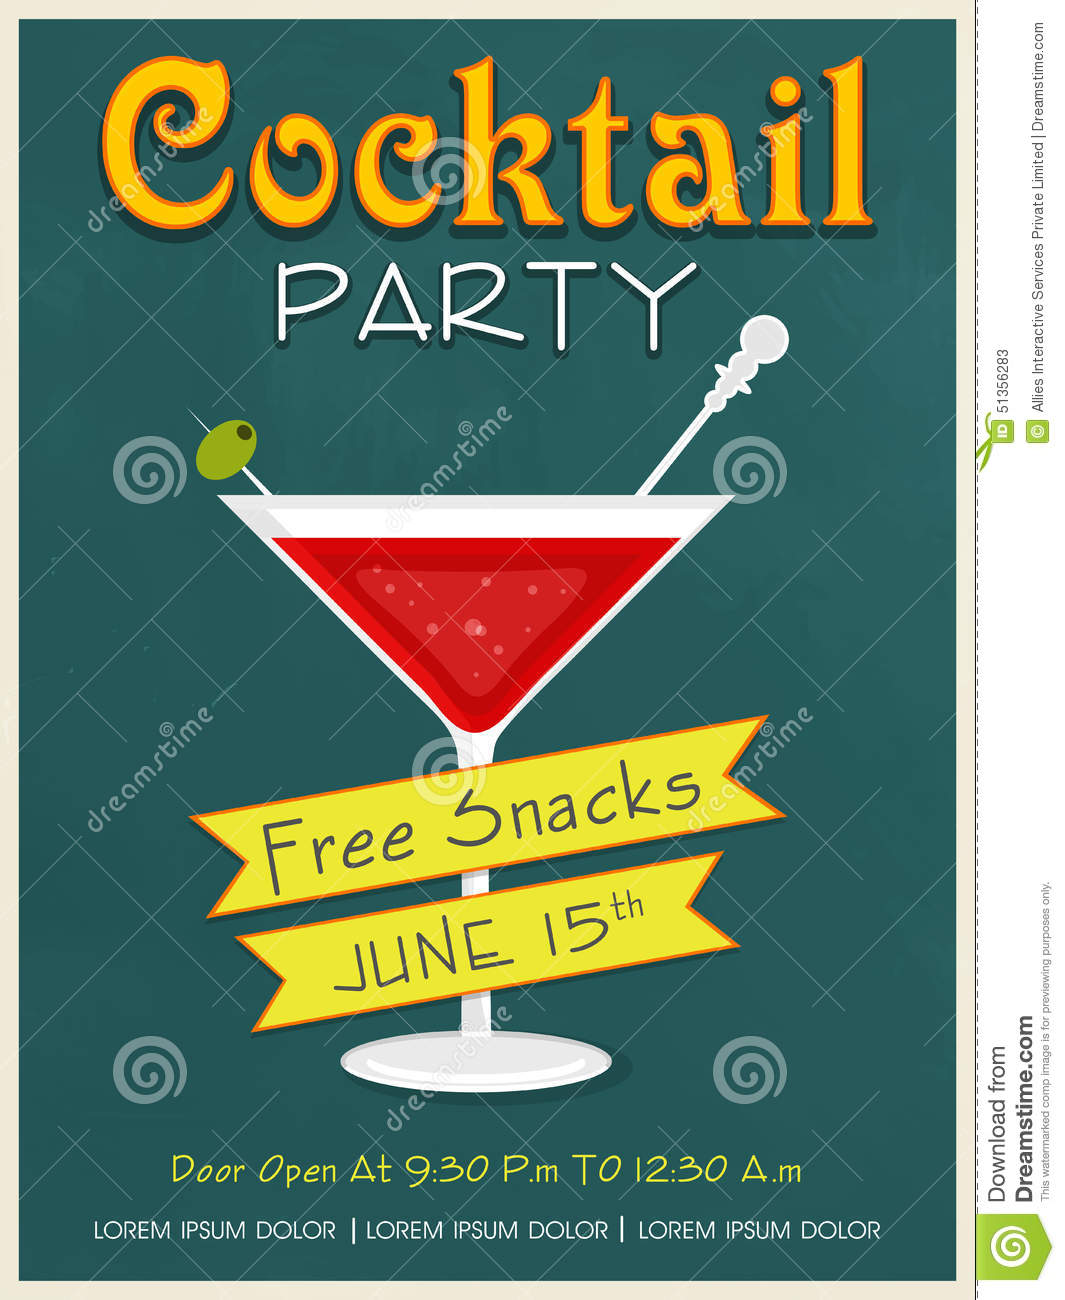 Invitation Card Design For Cocktail Party Illustration – Cocktail Party Invitation Cards